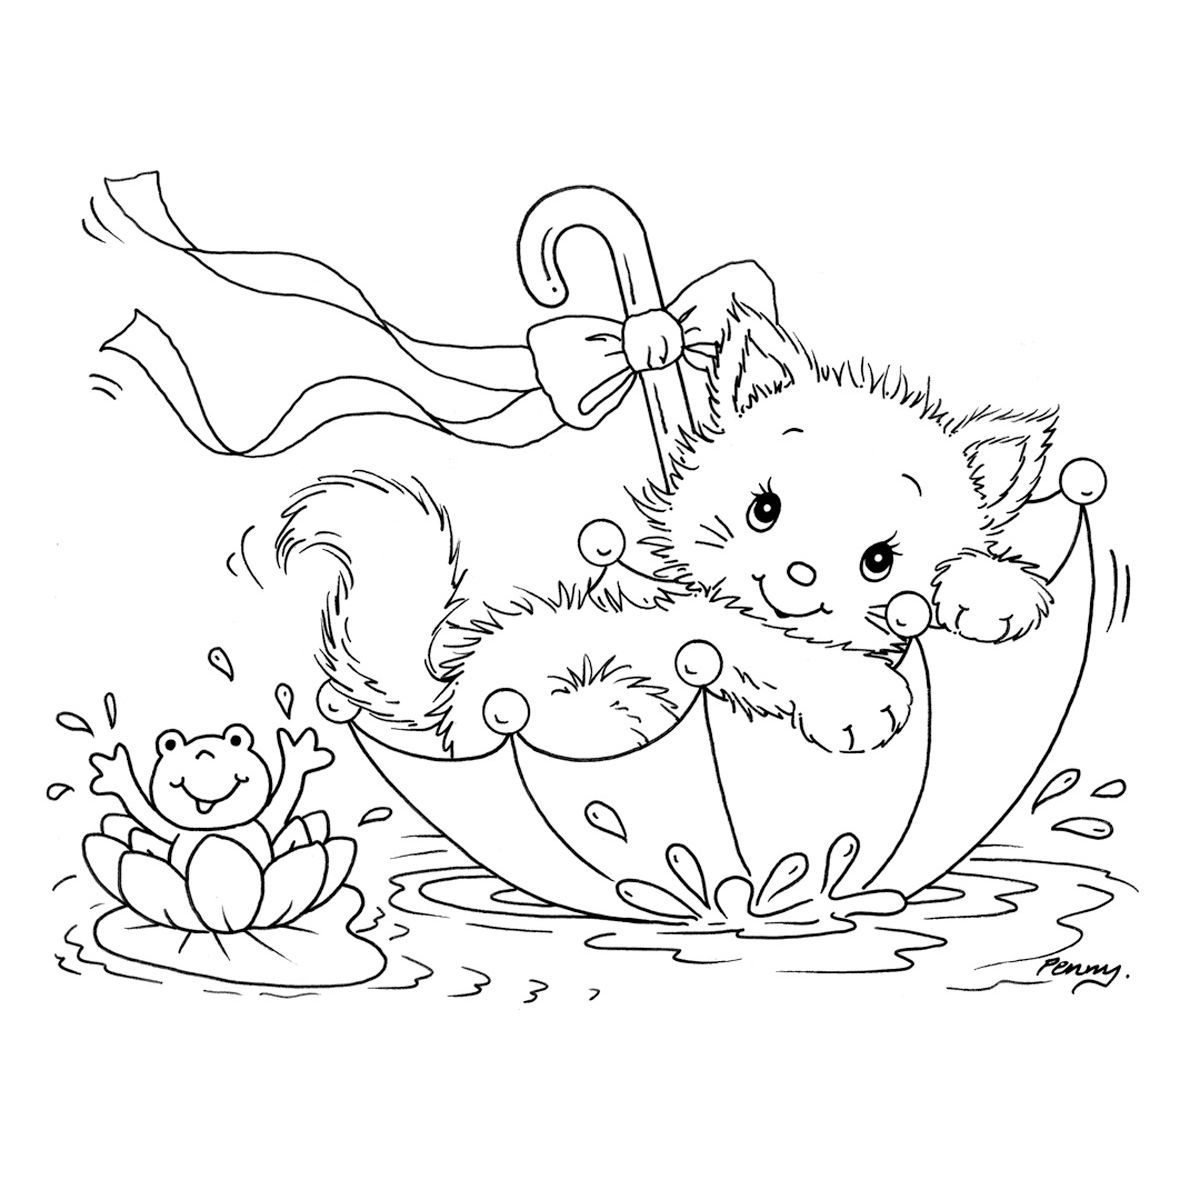 Kitten Cat Coloring Page Coloring Pages Animal Coloring Pages